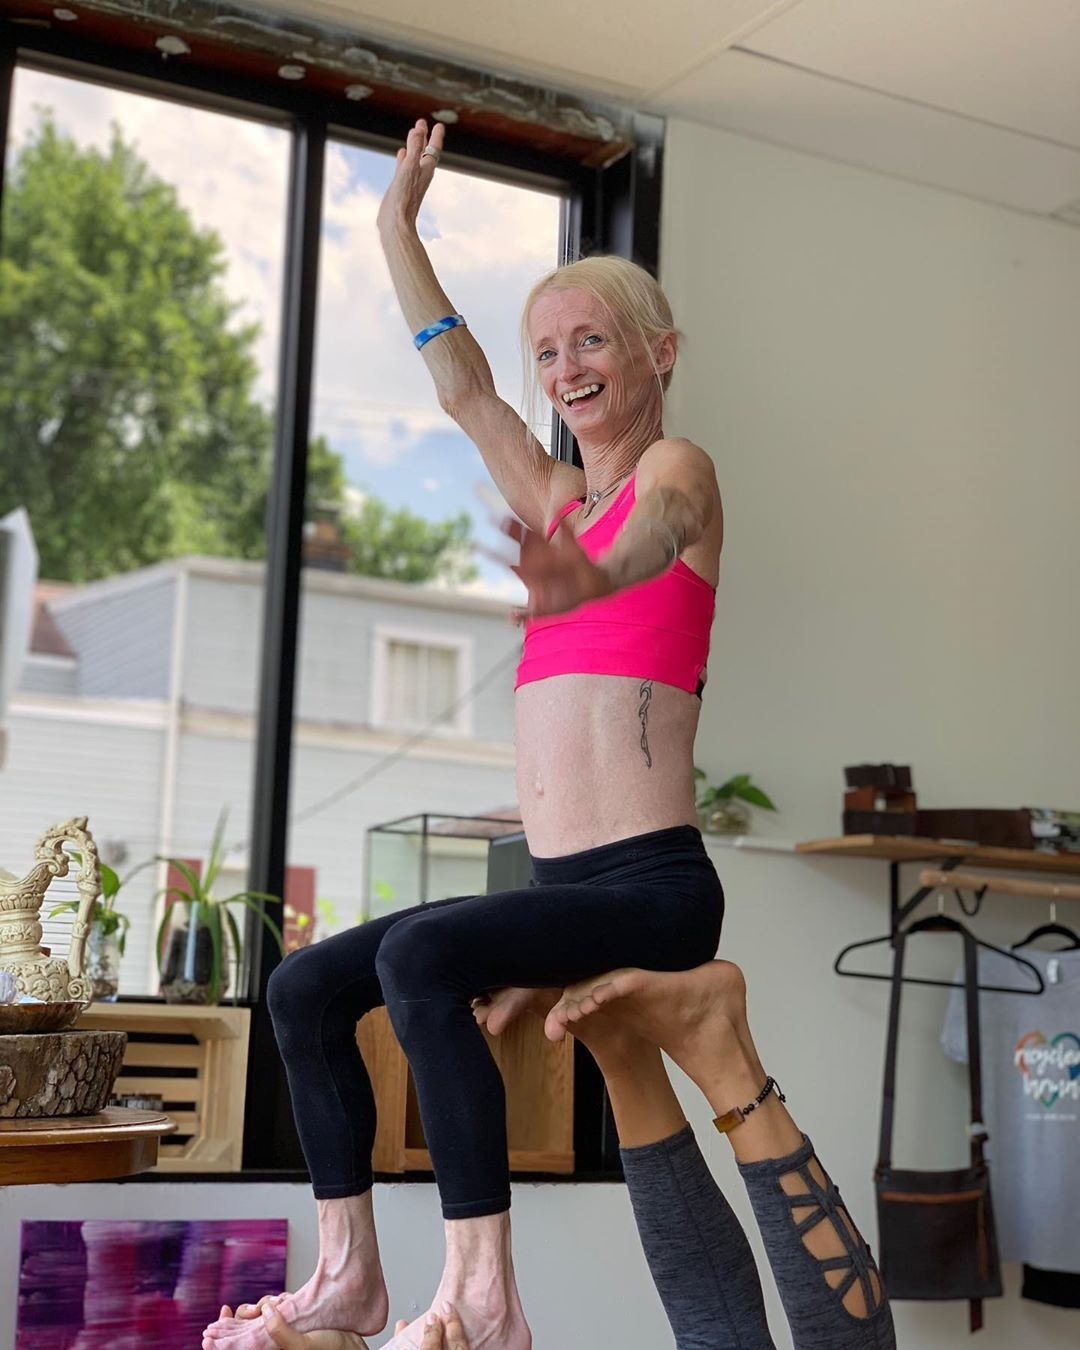 Her Rapid Aging Disease Doesn't Stop Her From Living and Loving Yoga #DOYOU